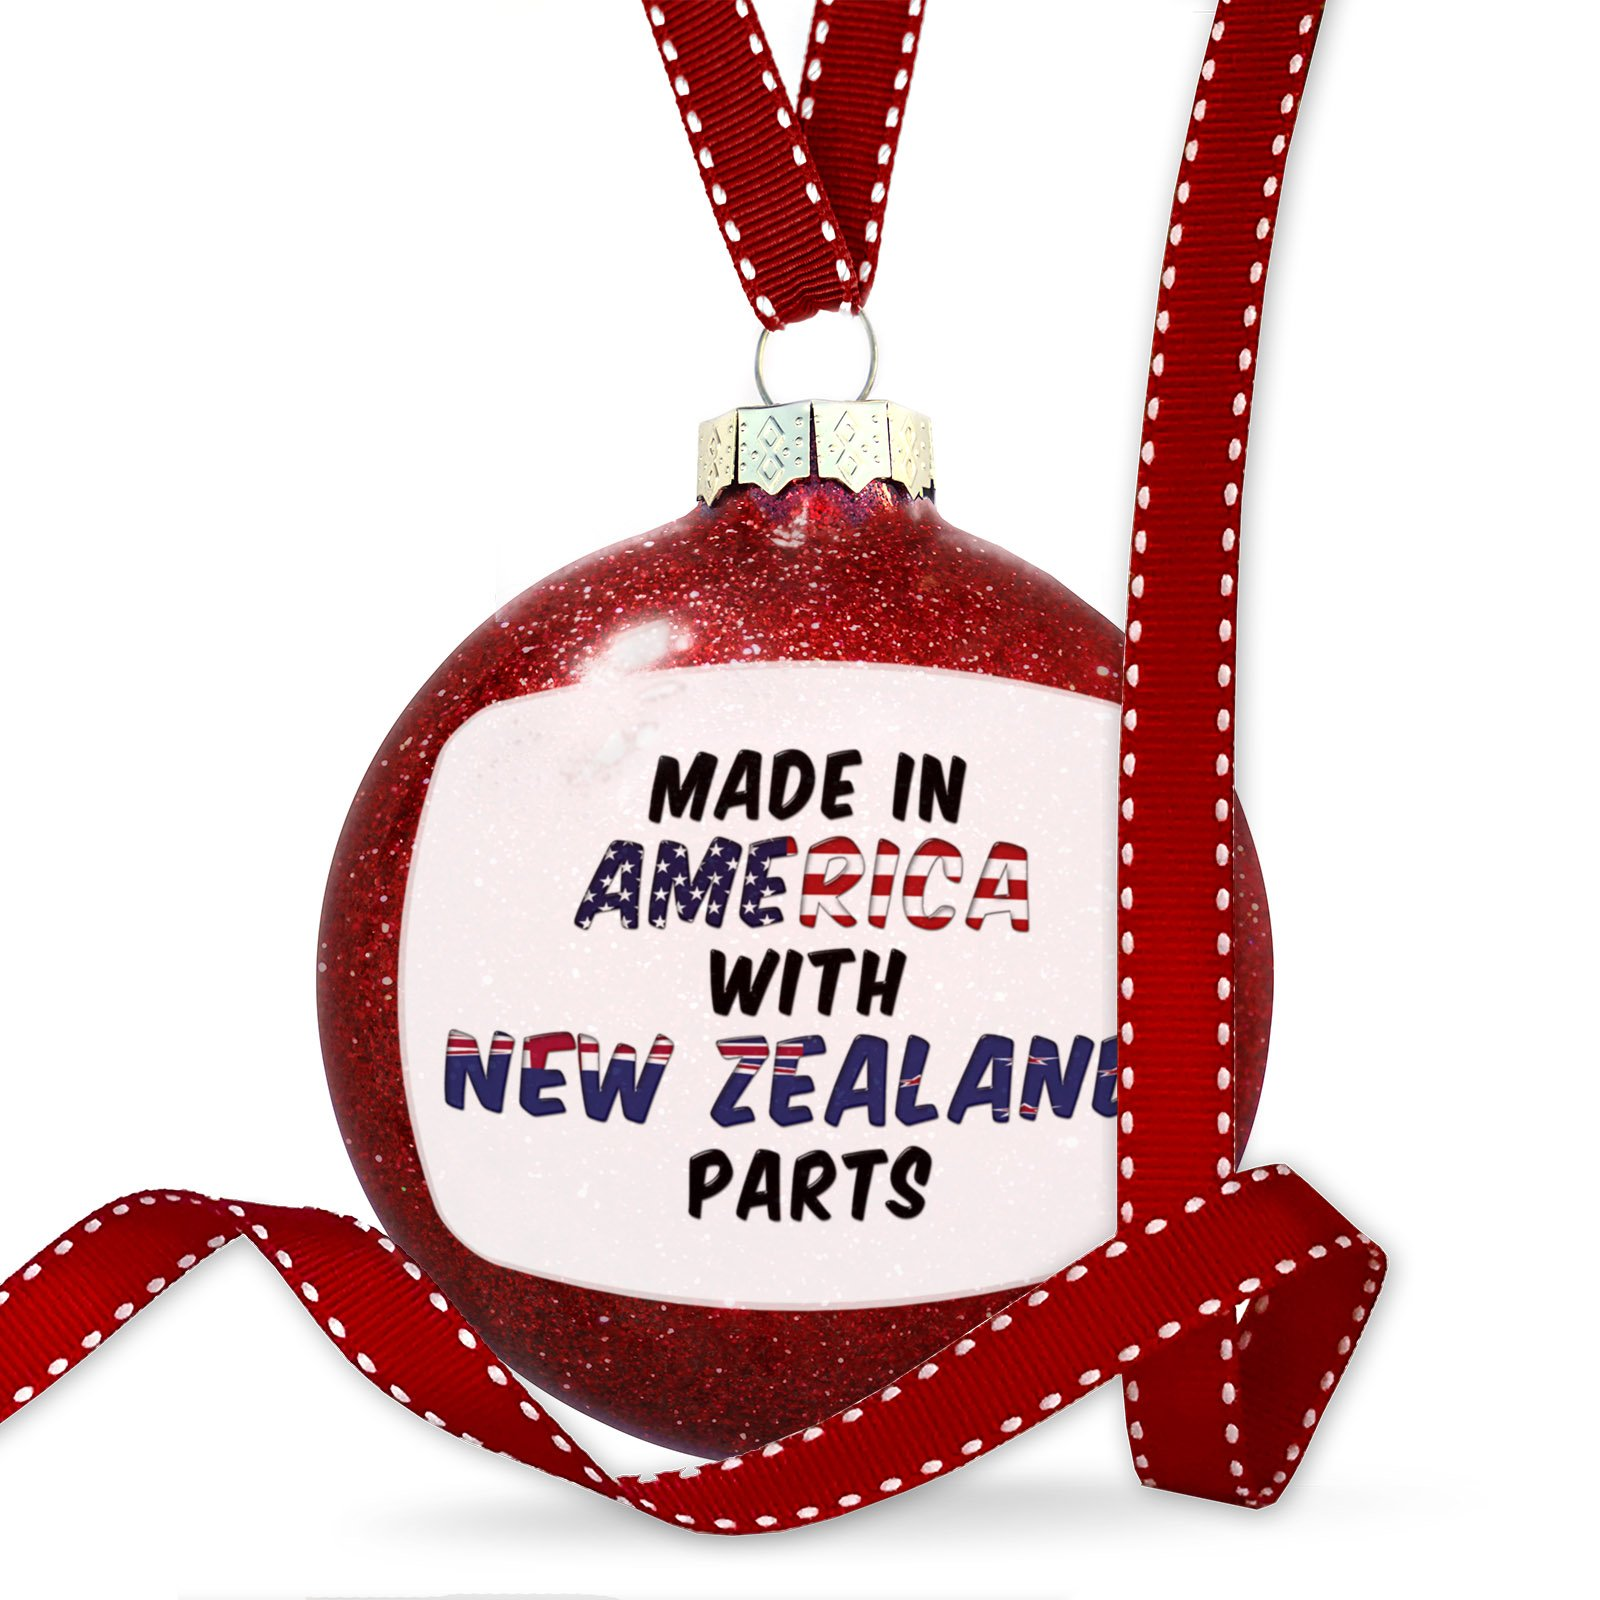 Christmas Decoration Made in America with Parts from New Zealand Ornament by NEONBLOND (Image #1)